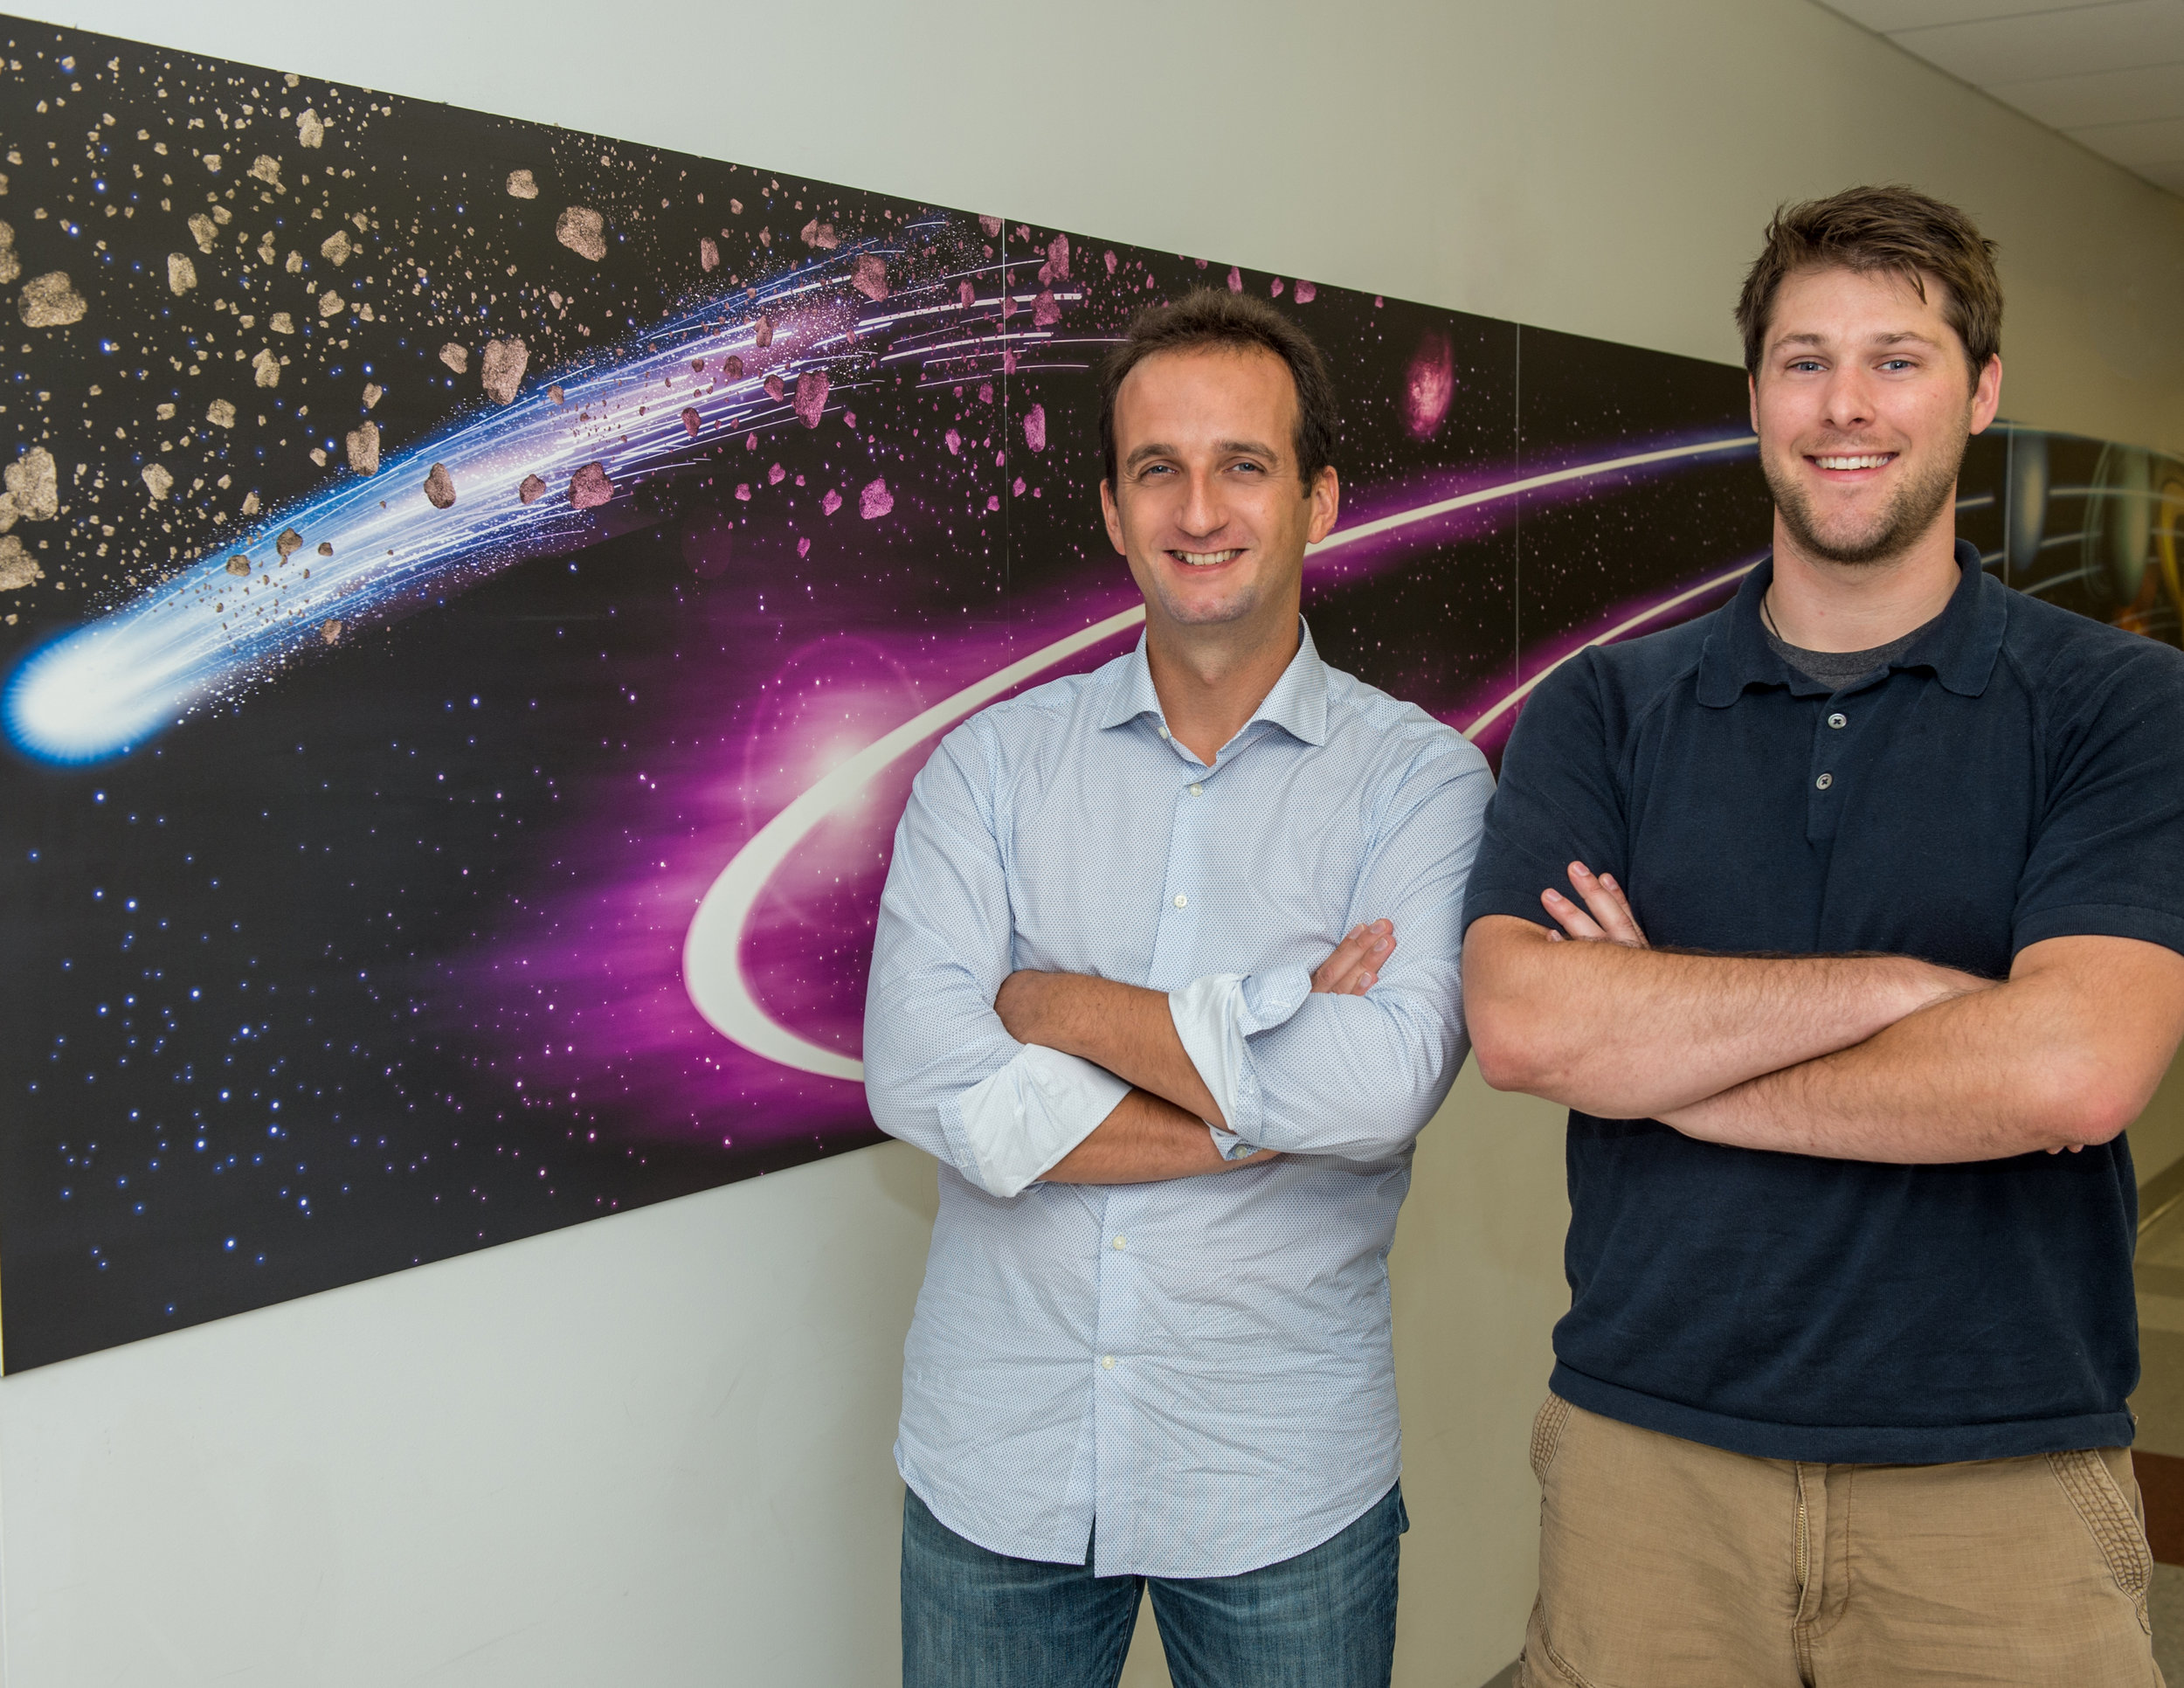 Catholic University's Nicolas Gorius and Goddard technologist Joshua Lyzhoft are evaluating the use of a thermometer-type device to help characterize comets and potentially hazardous asteroids. - Image Credits: NASA/W. Hrybyk